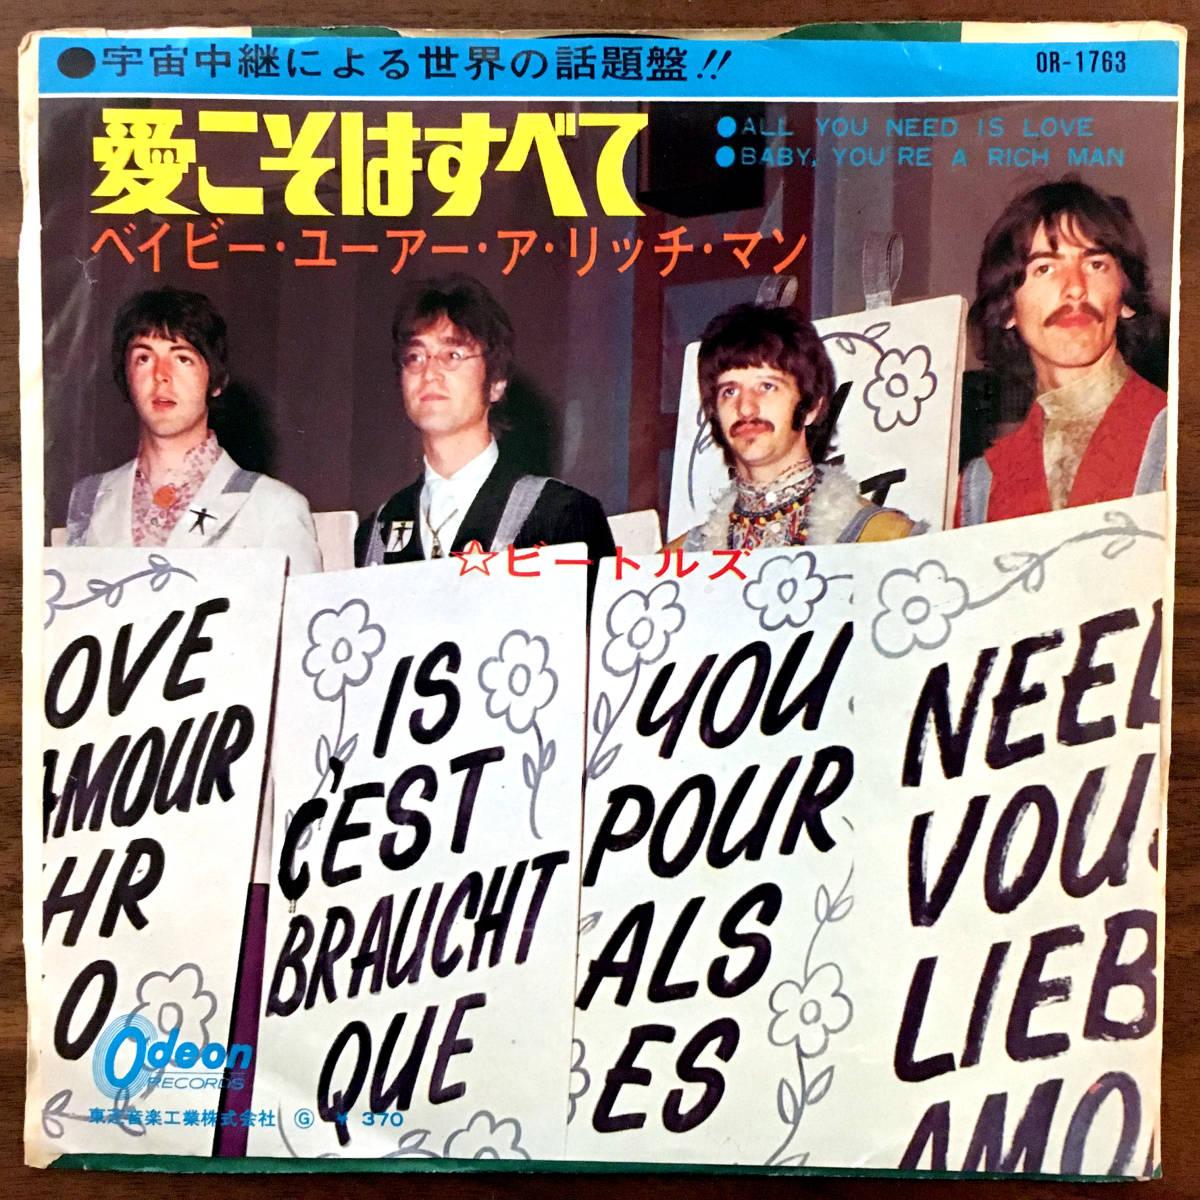 EP/THE BEATLES/ALL YOU NEED IS LOVE【EP8枚まで送料同じ】愛こそはすべて/BABY YOU'RE RICH MAN 7インチアナログレコードOdeon日本盤